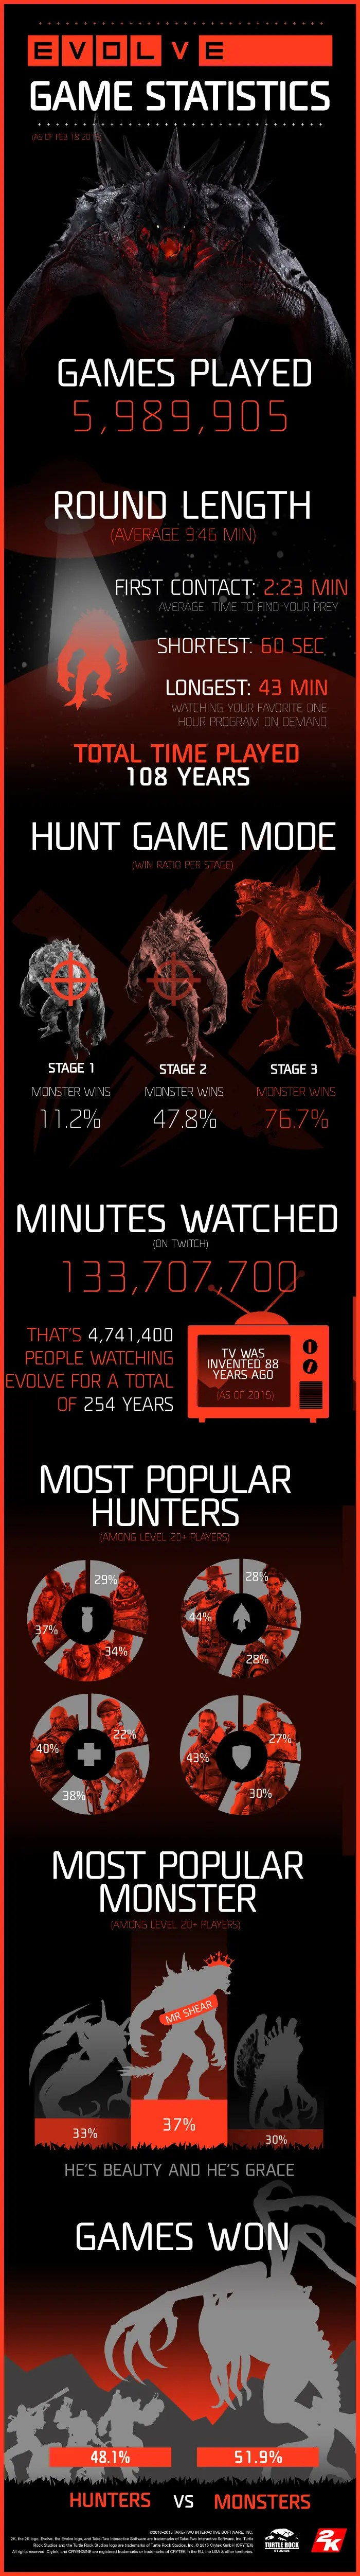 2K_EVOLVE_LAUNCH_INFOGRAPHIC1